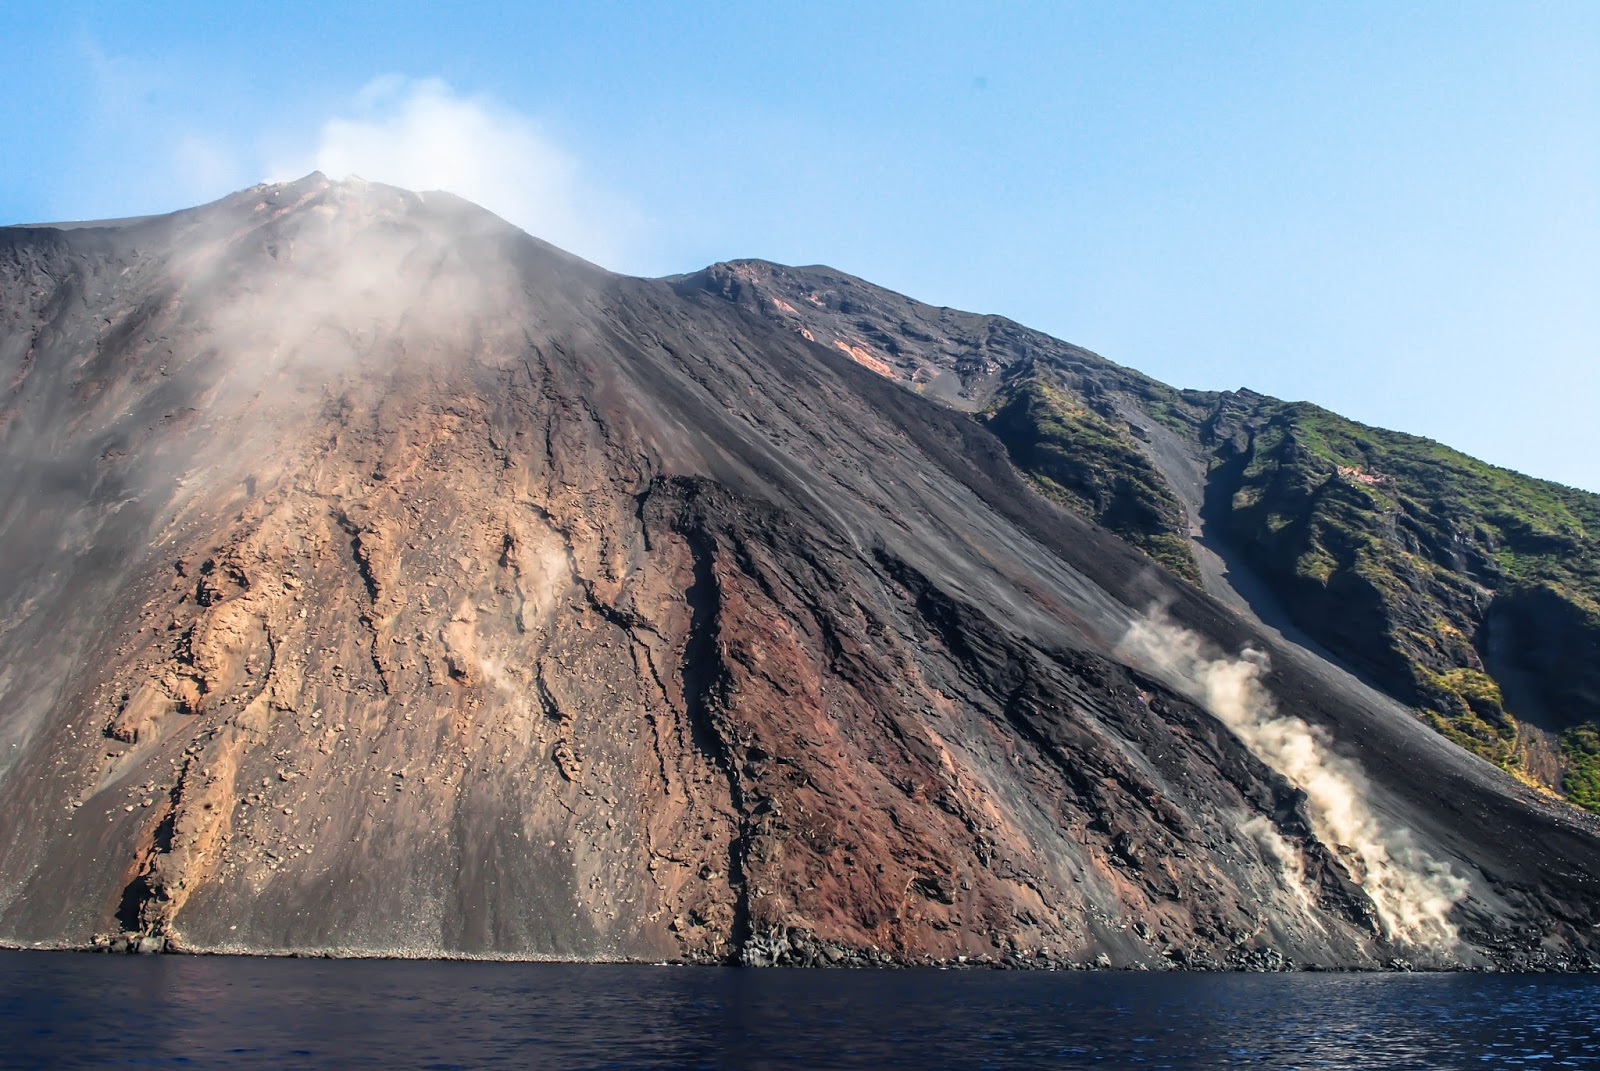 Stromboli Volcano in Sicily from the Sea